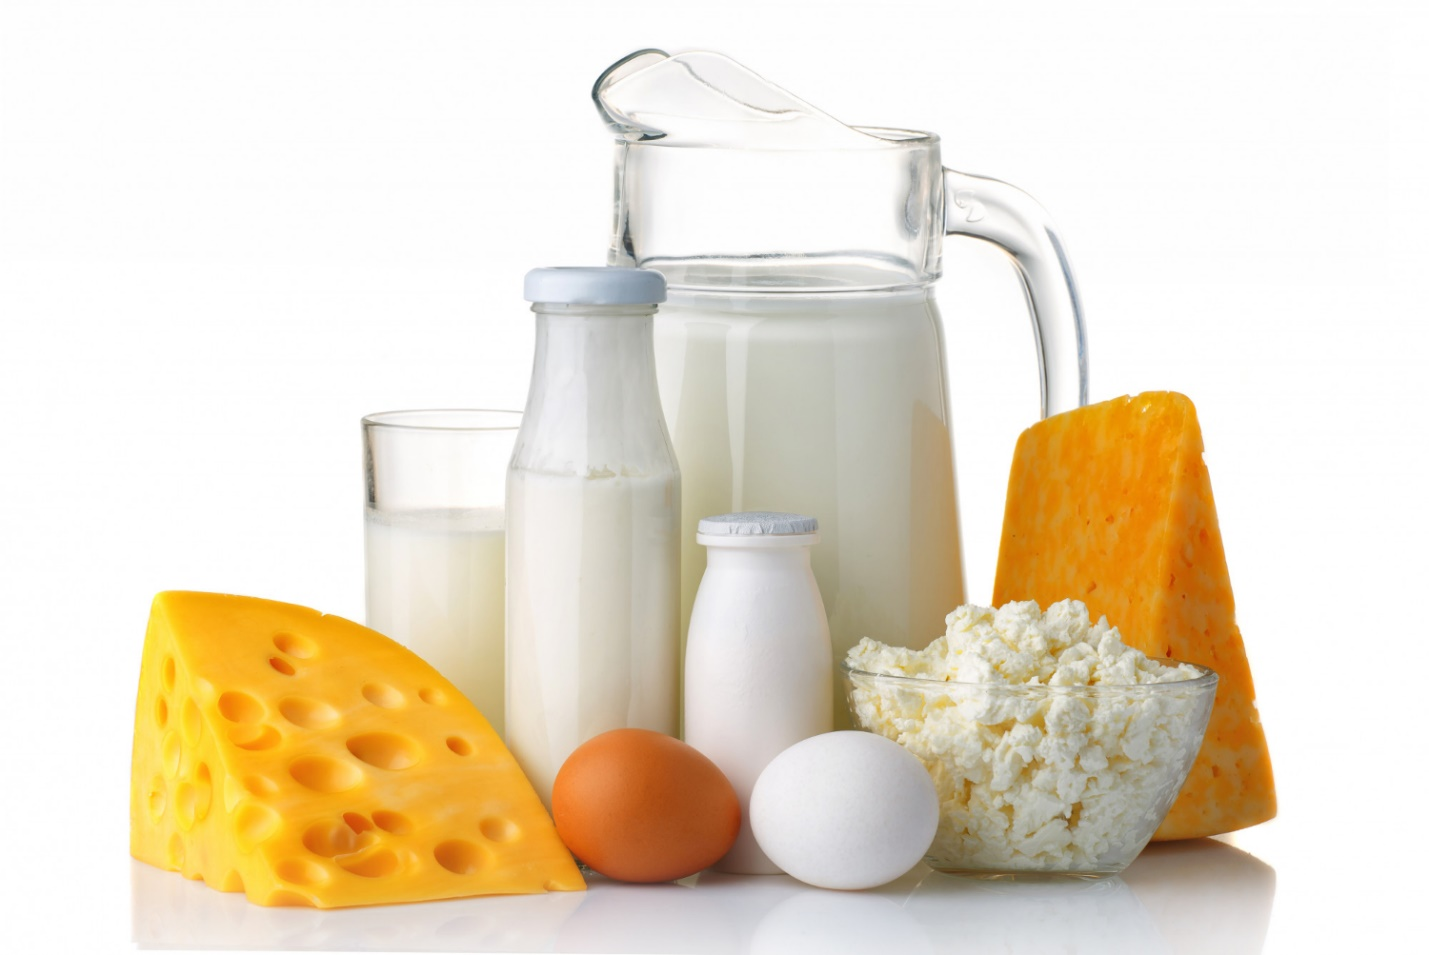 C:\Users\Dell\Downloads\dairy-protein-products-concept.jpg